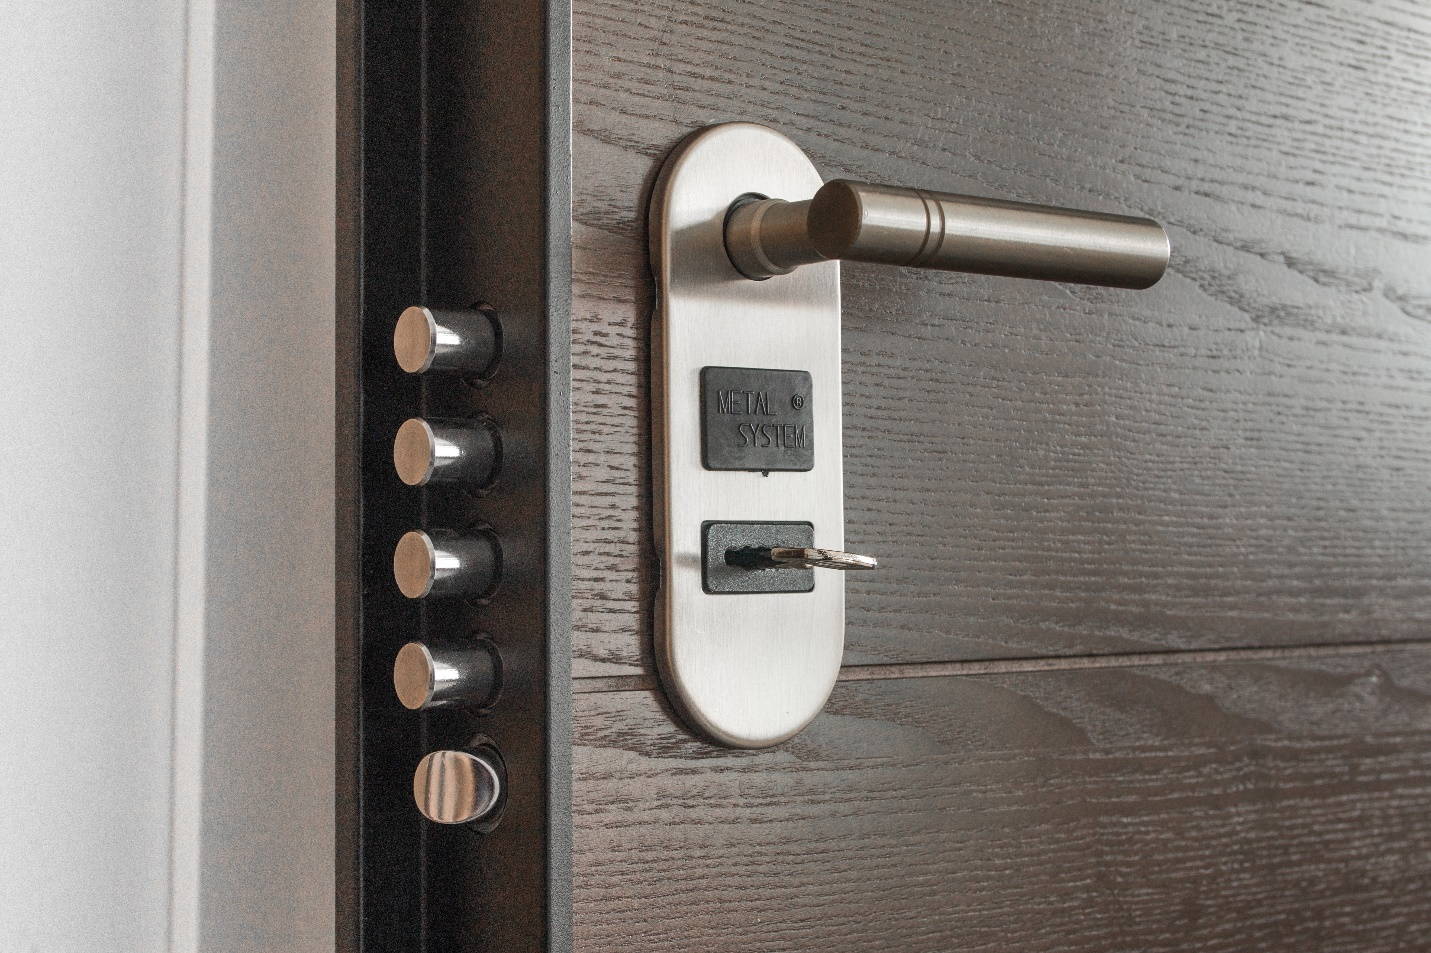 door handle with a metal lock and a key